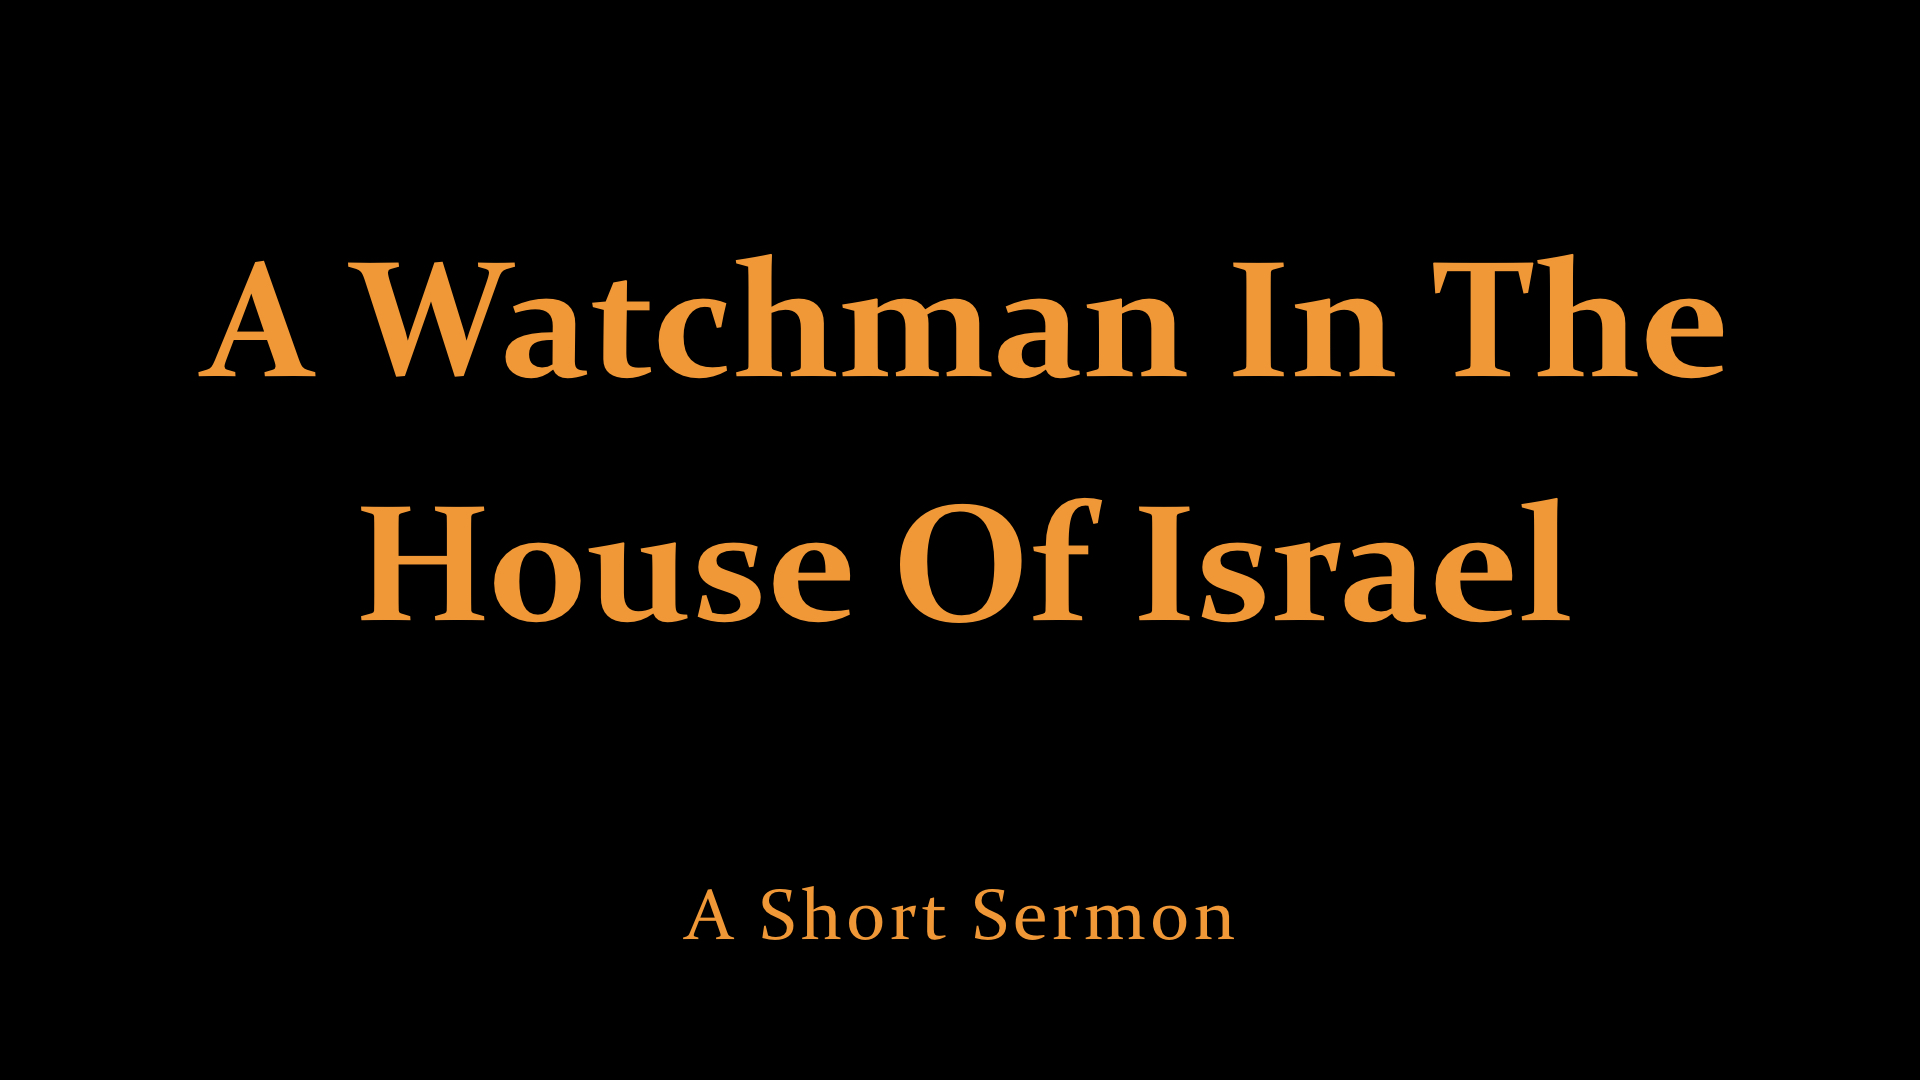 A Watchman In The House Of Israel - A Short Sermon.jpeg